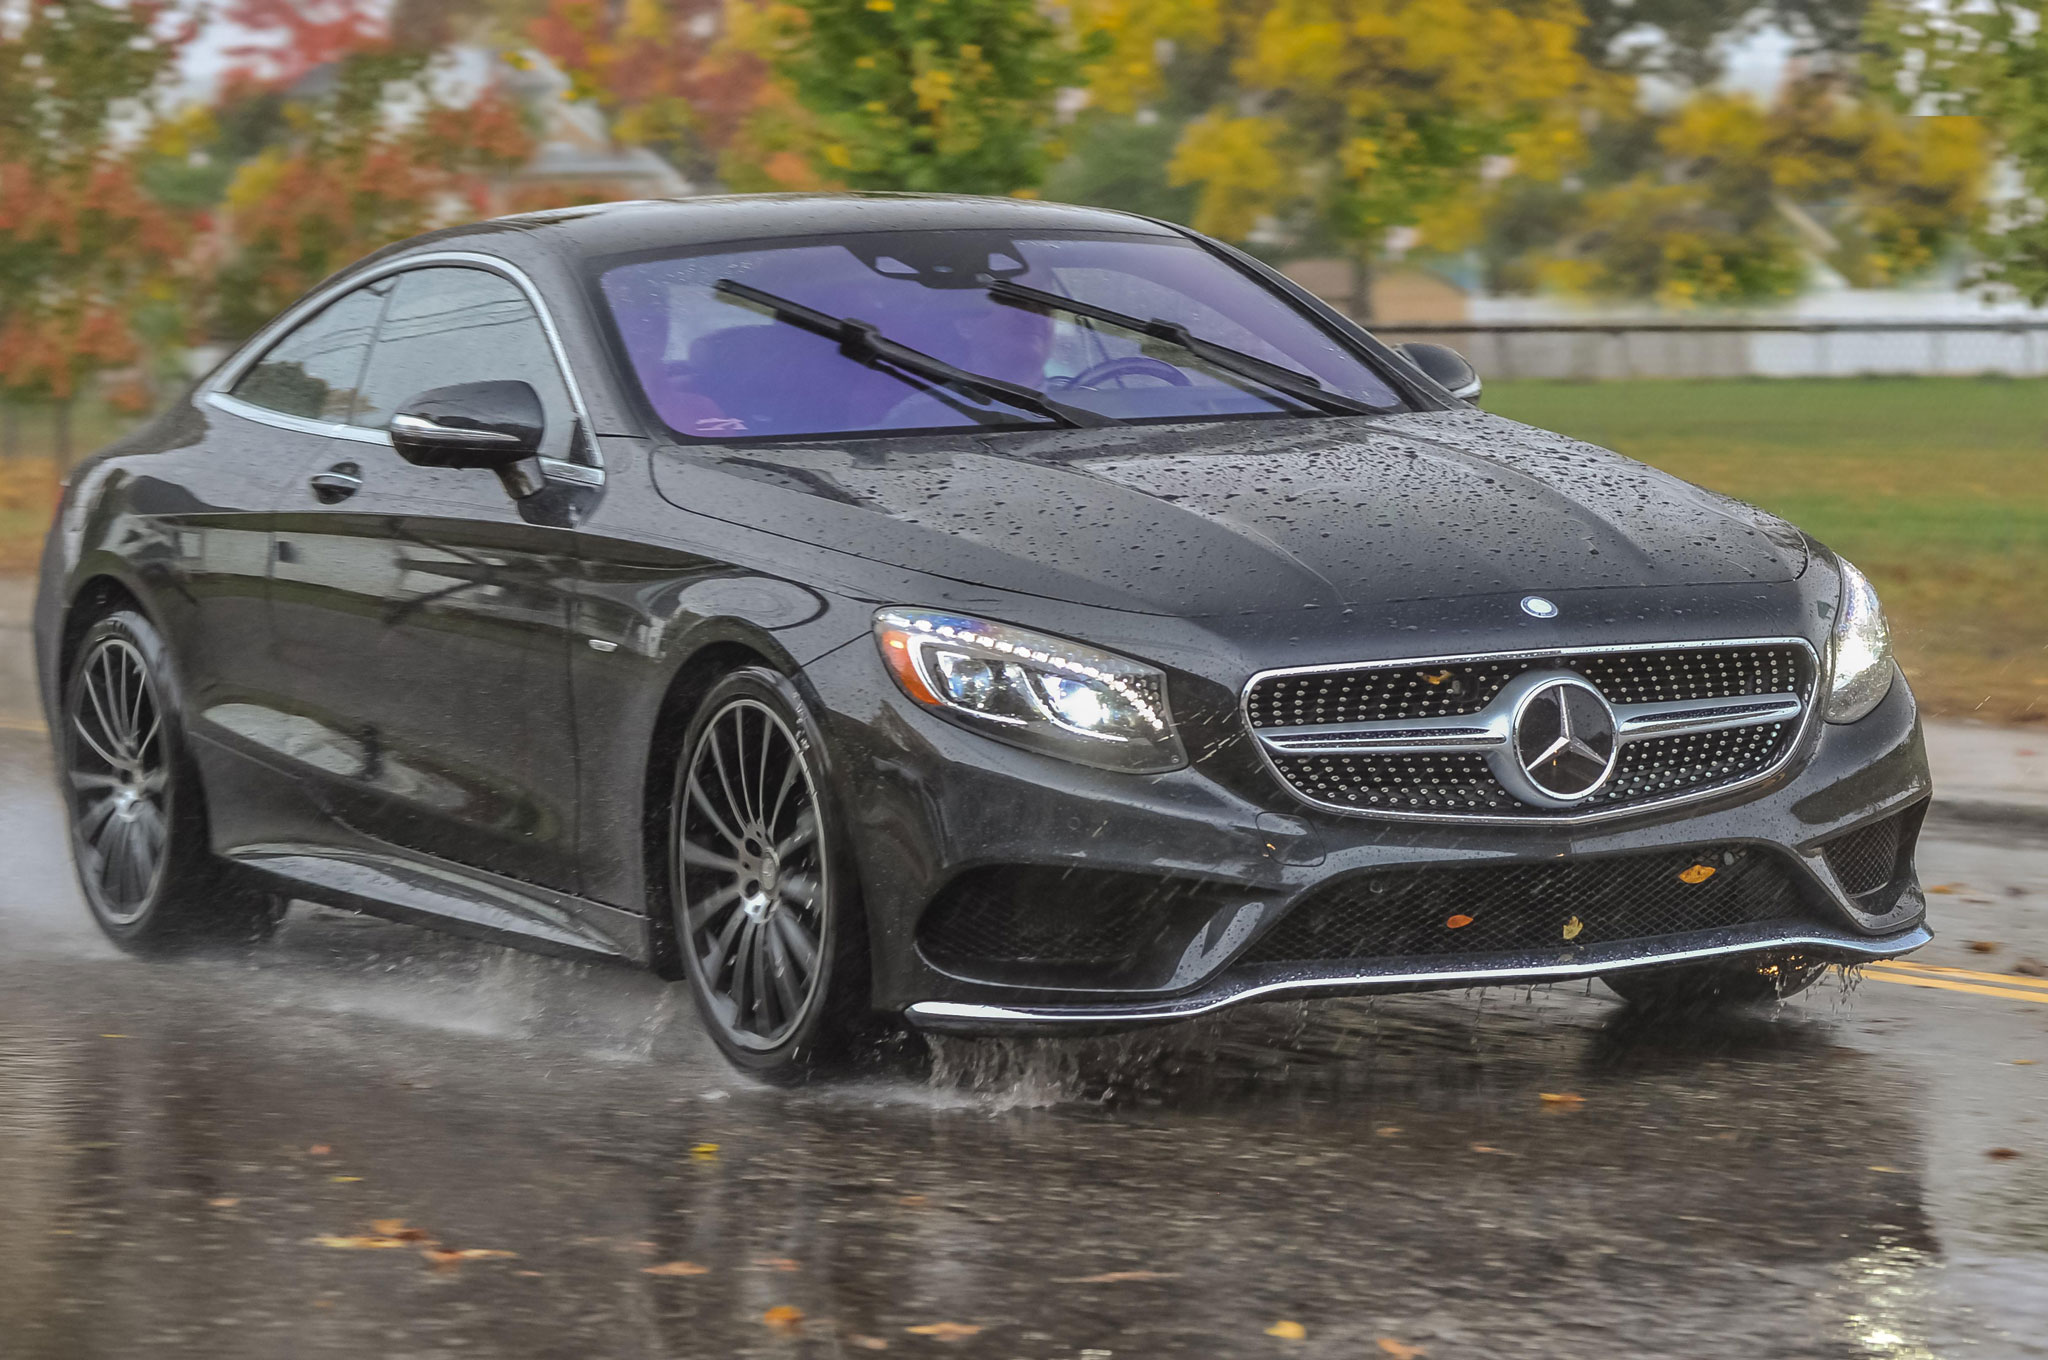 http://st.automobilemag.com/uploads/sites/11/2015/07/2015-Mercedes-Benz-S550-coupe-in-motion-through-rain.jpg